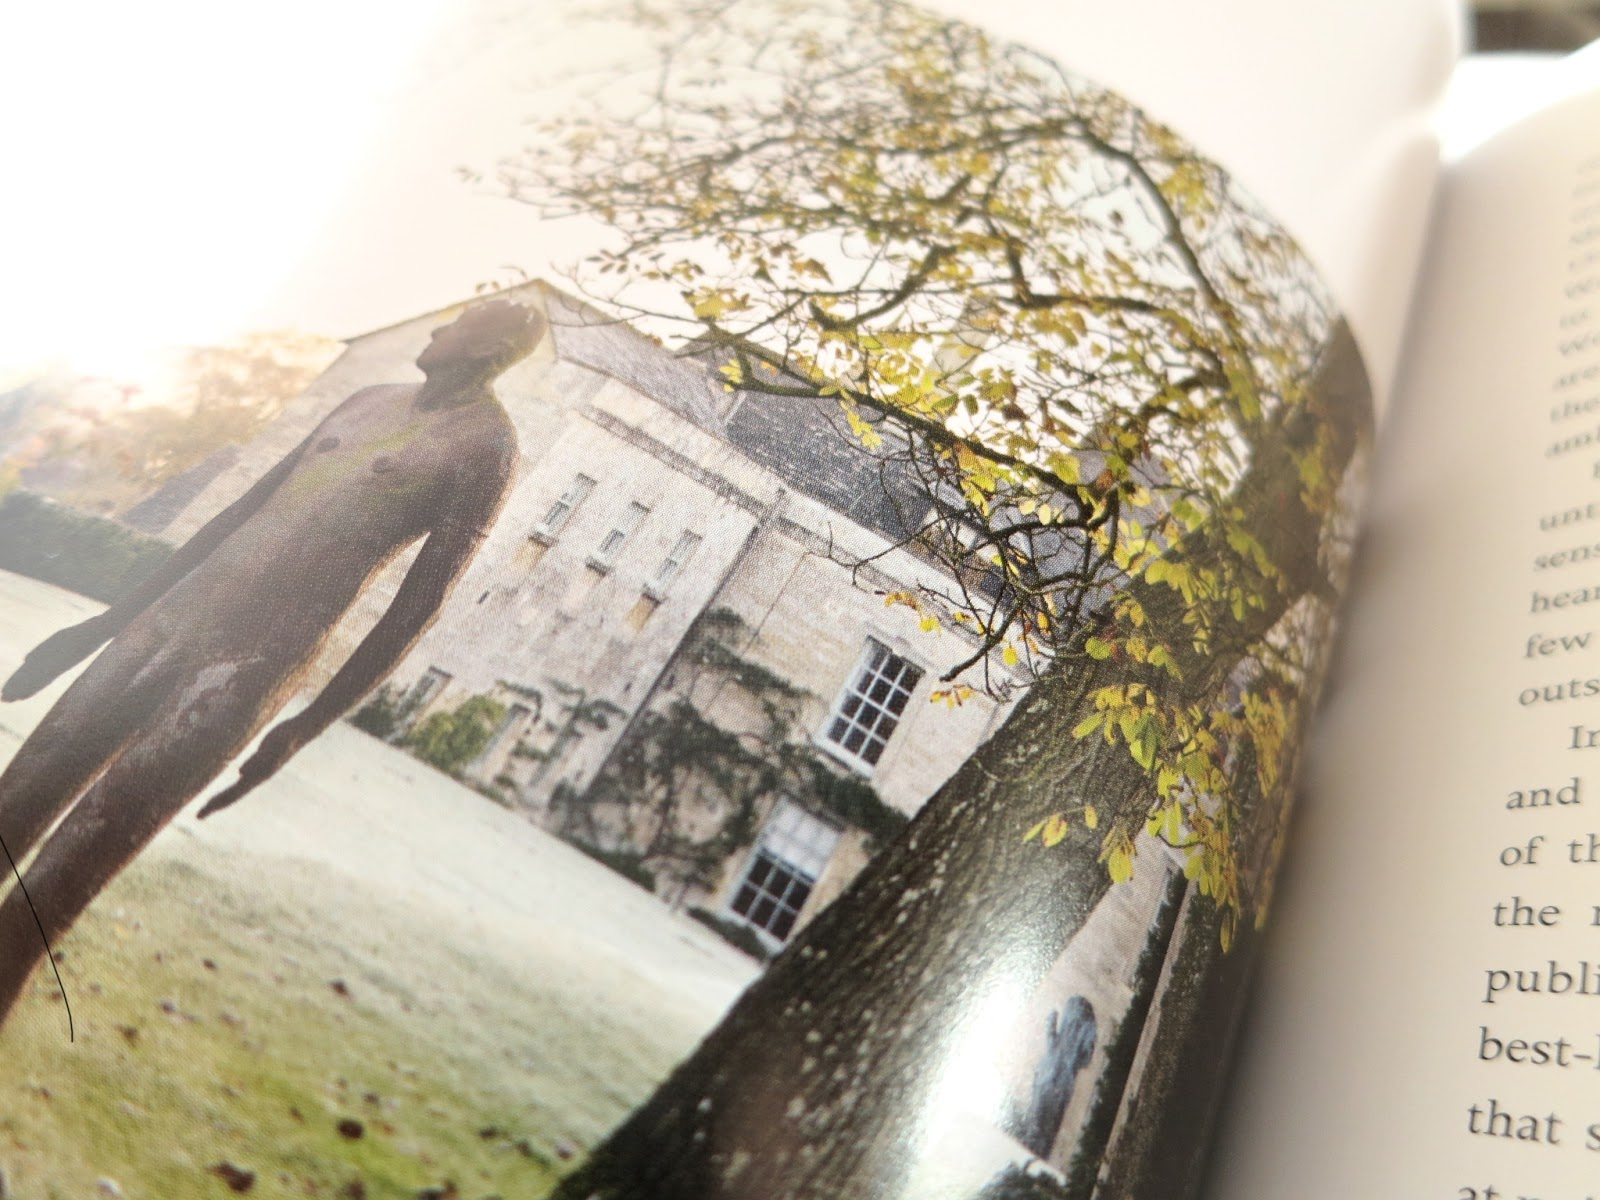 Loose and Leafy photo of sculpture by and of Antony Gormley from p.41 in Secret Gardens of the Cotswolds